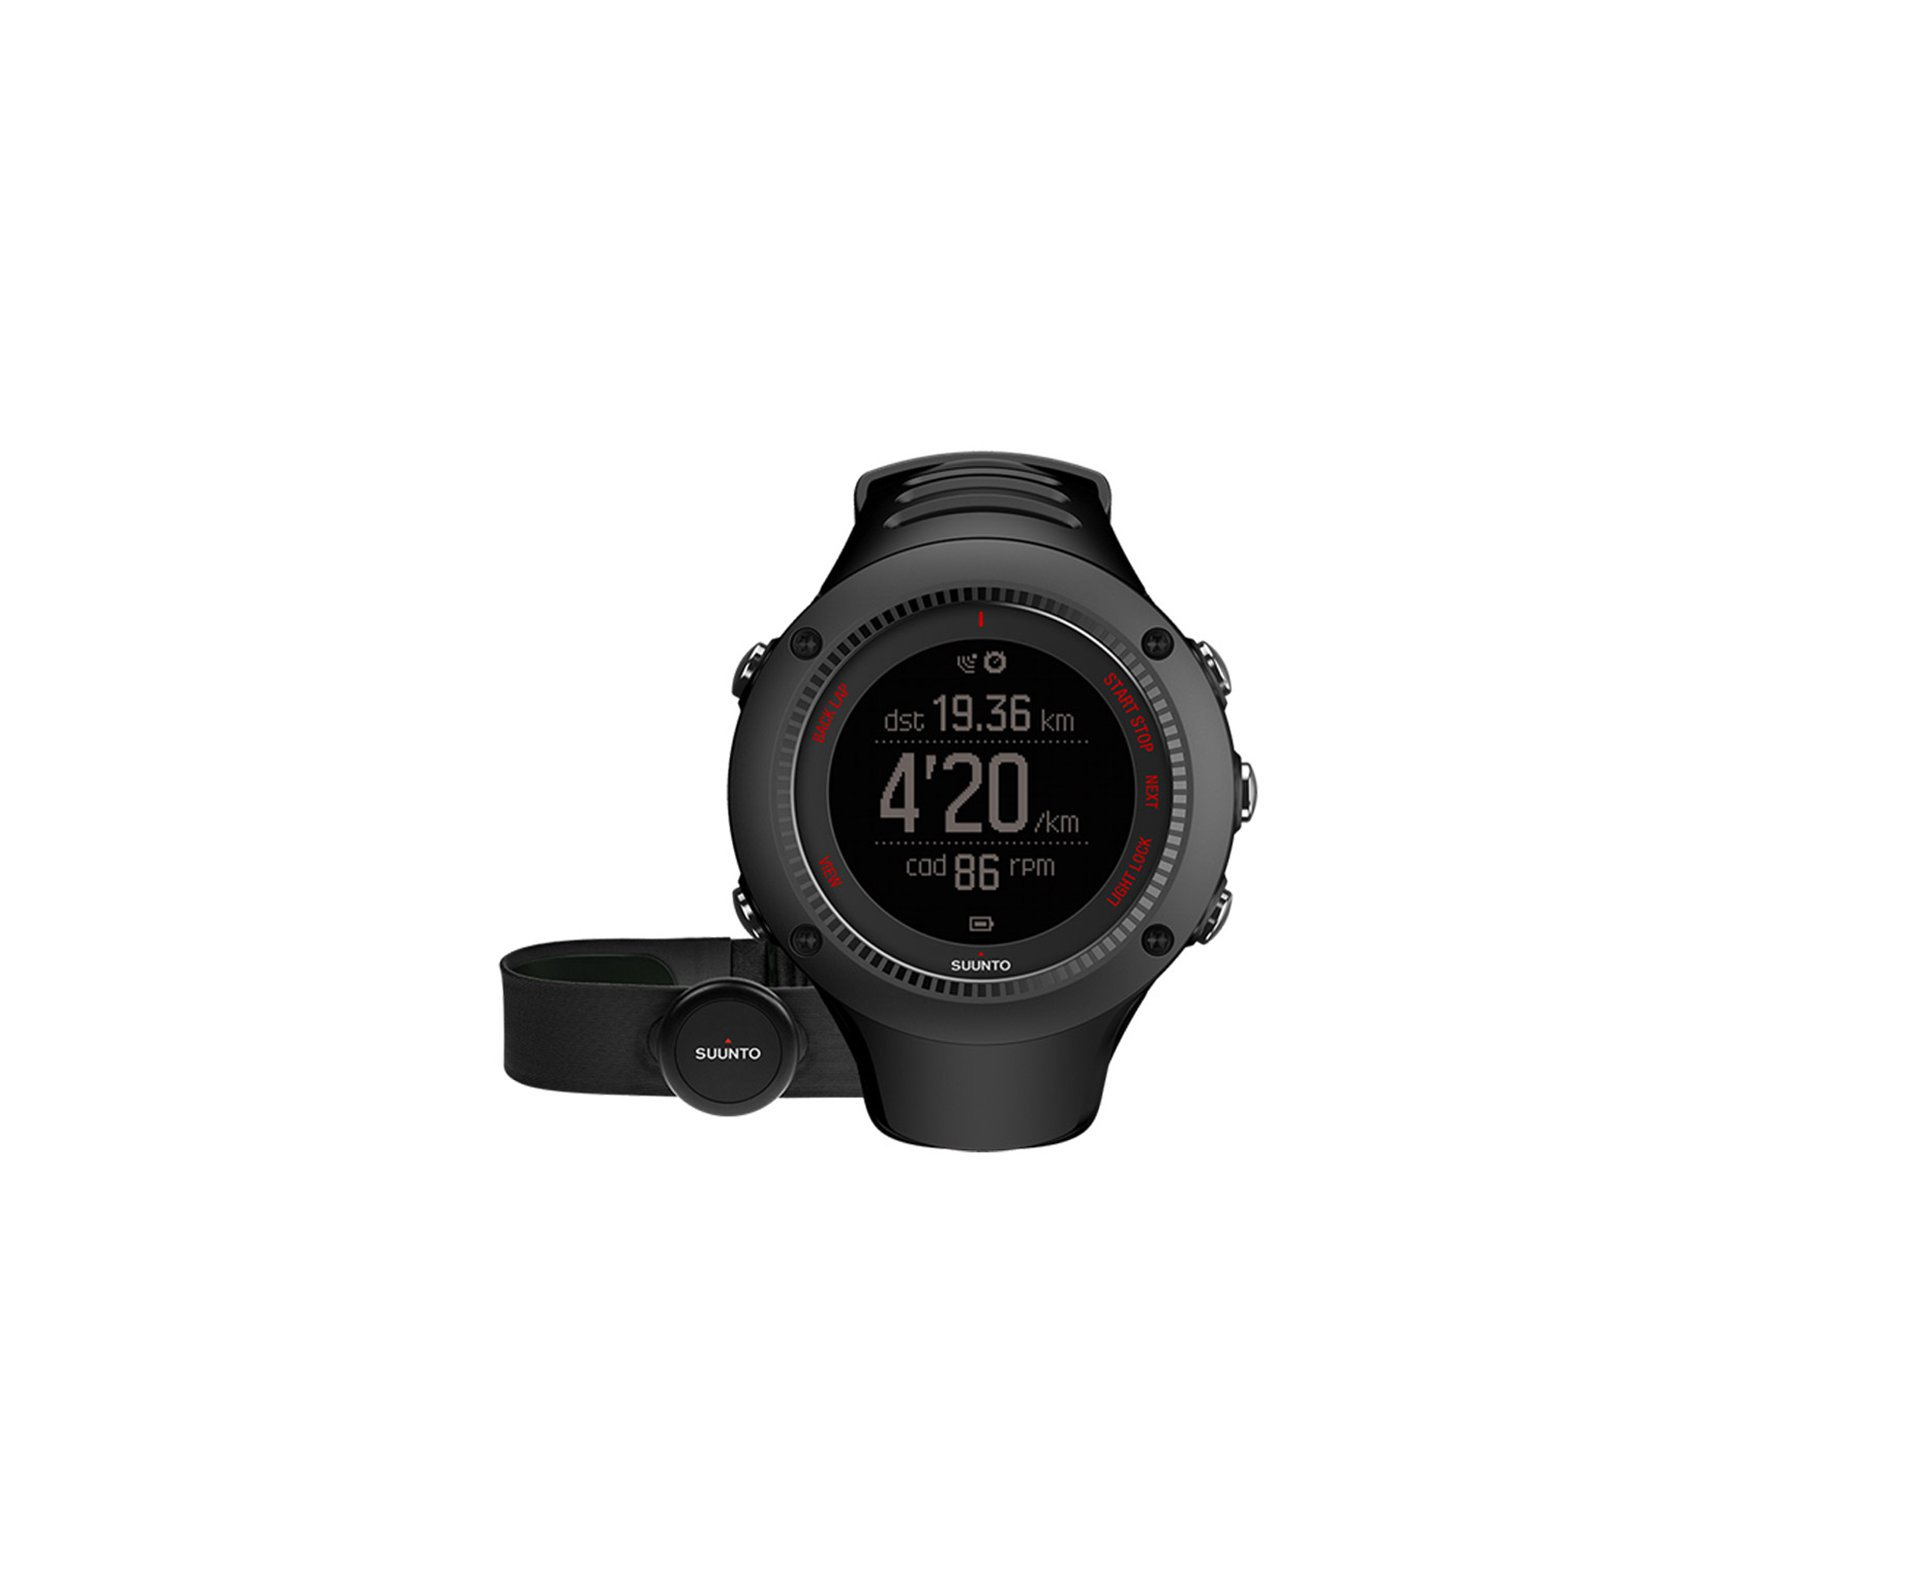 Relogio Ambit3 Run Preto Hr - Suunto